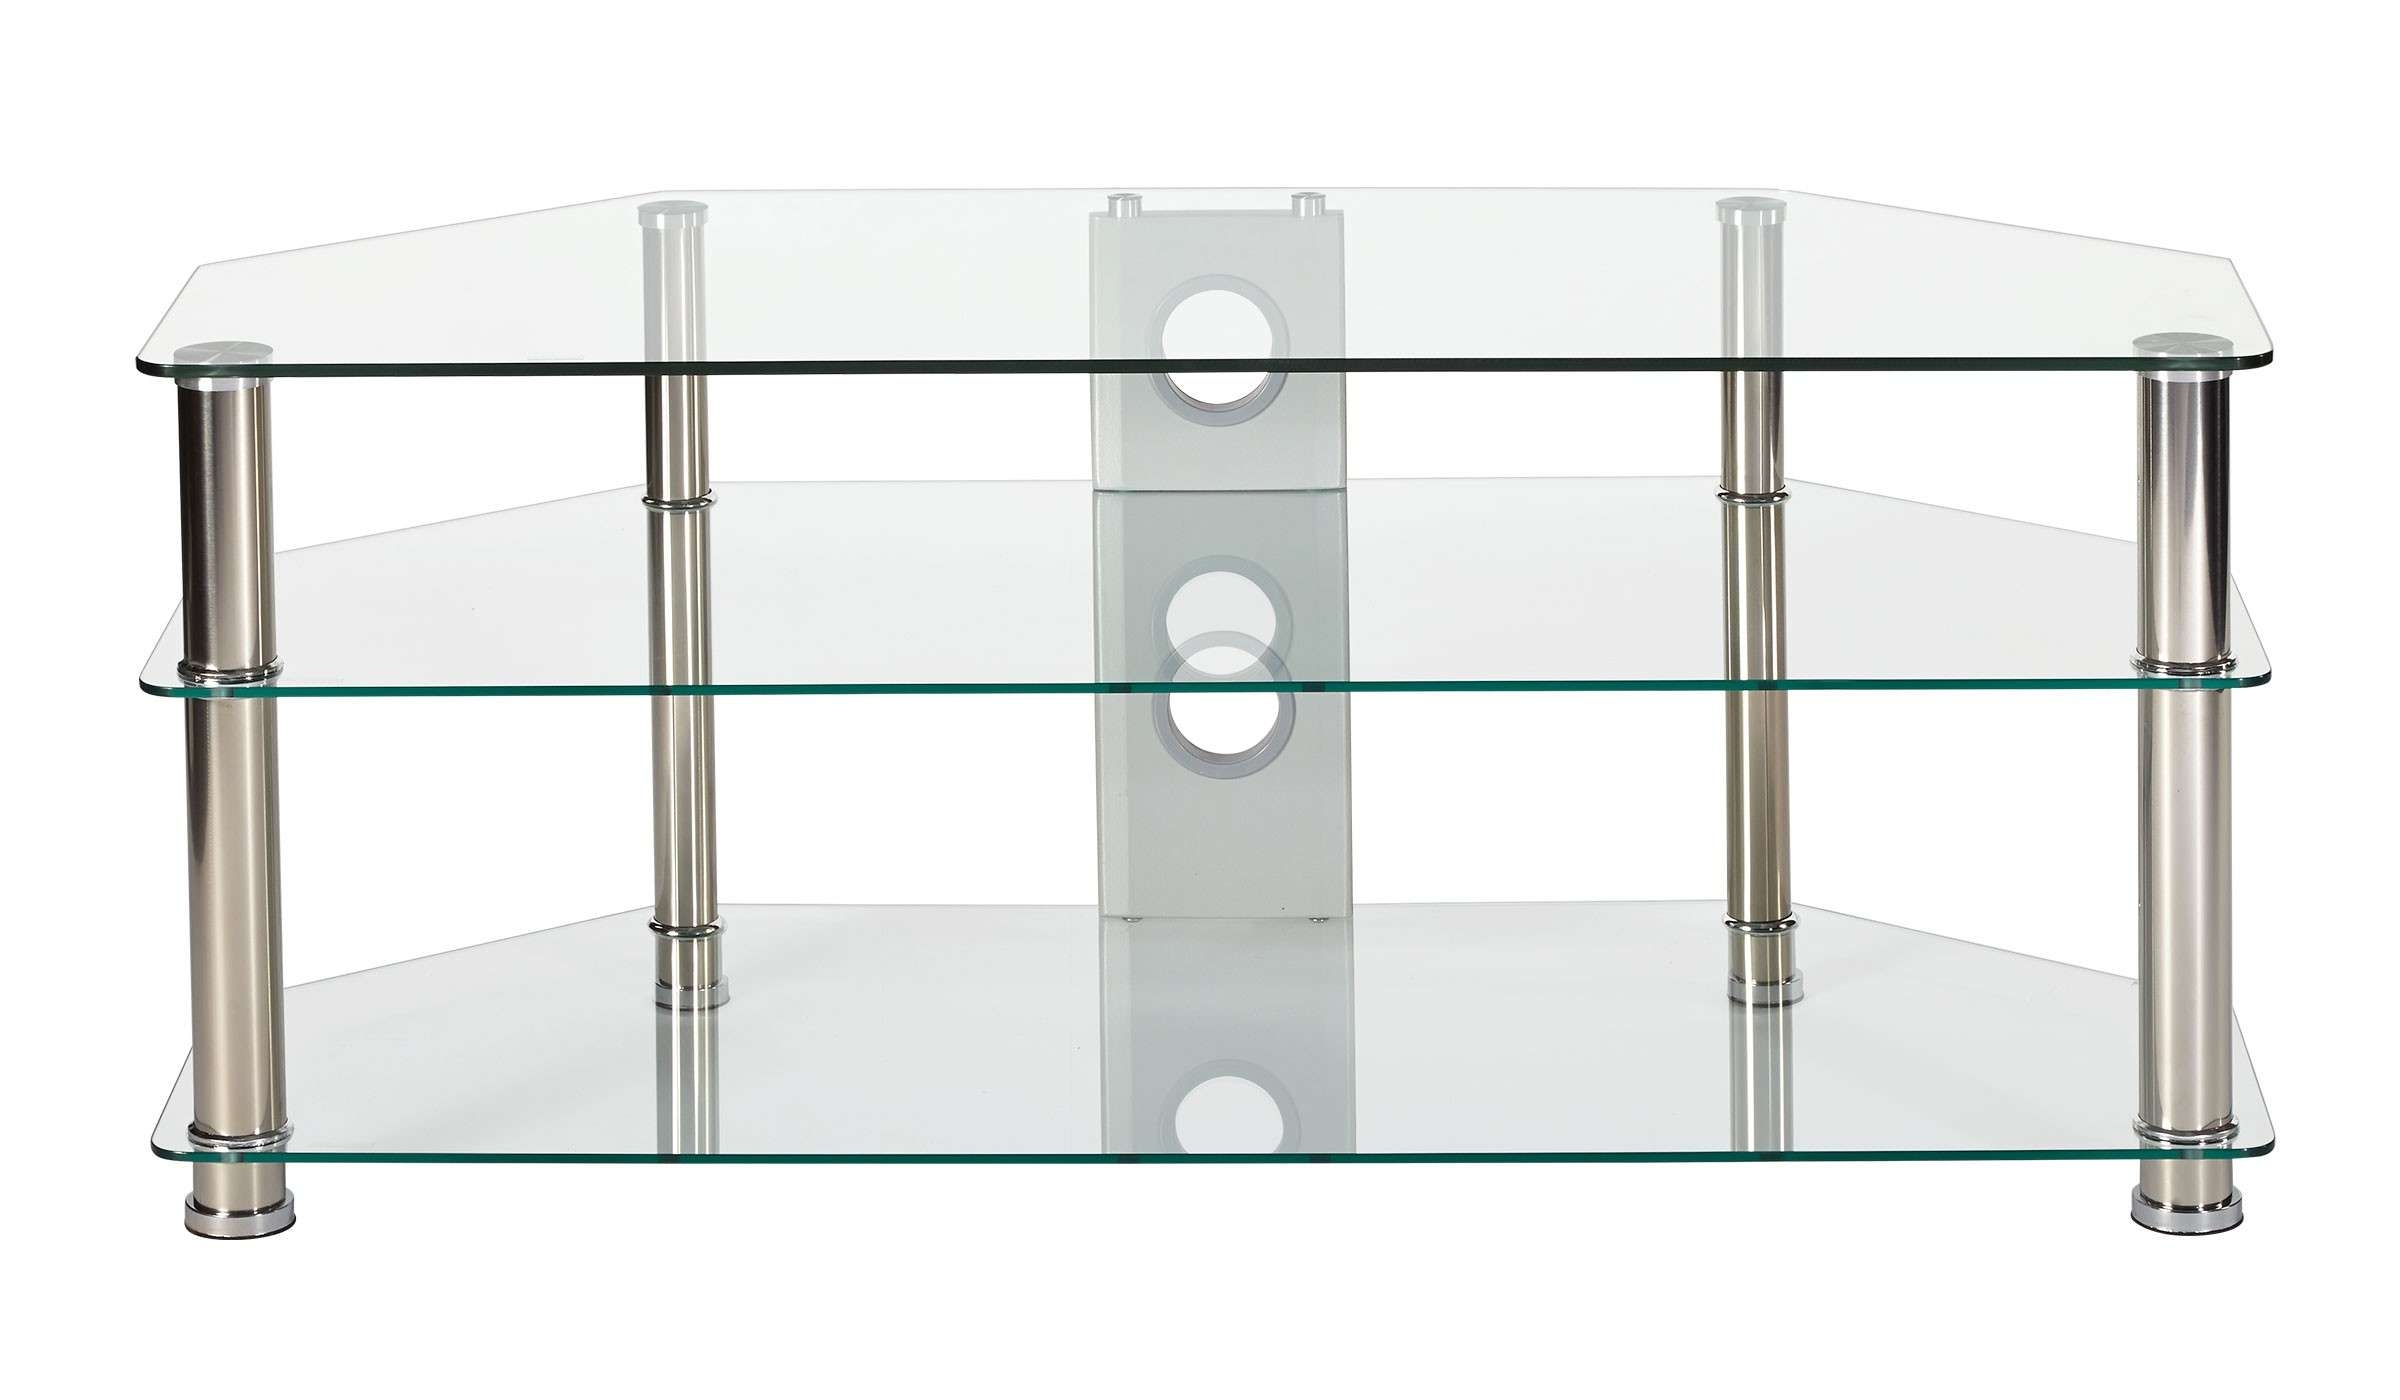 Best Clear Glass Stand For Up To 55 Inch Tv With Chrome Legs Throughout Clear Glass Tv Stands (View 6 of 15)